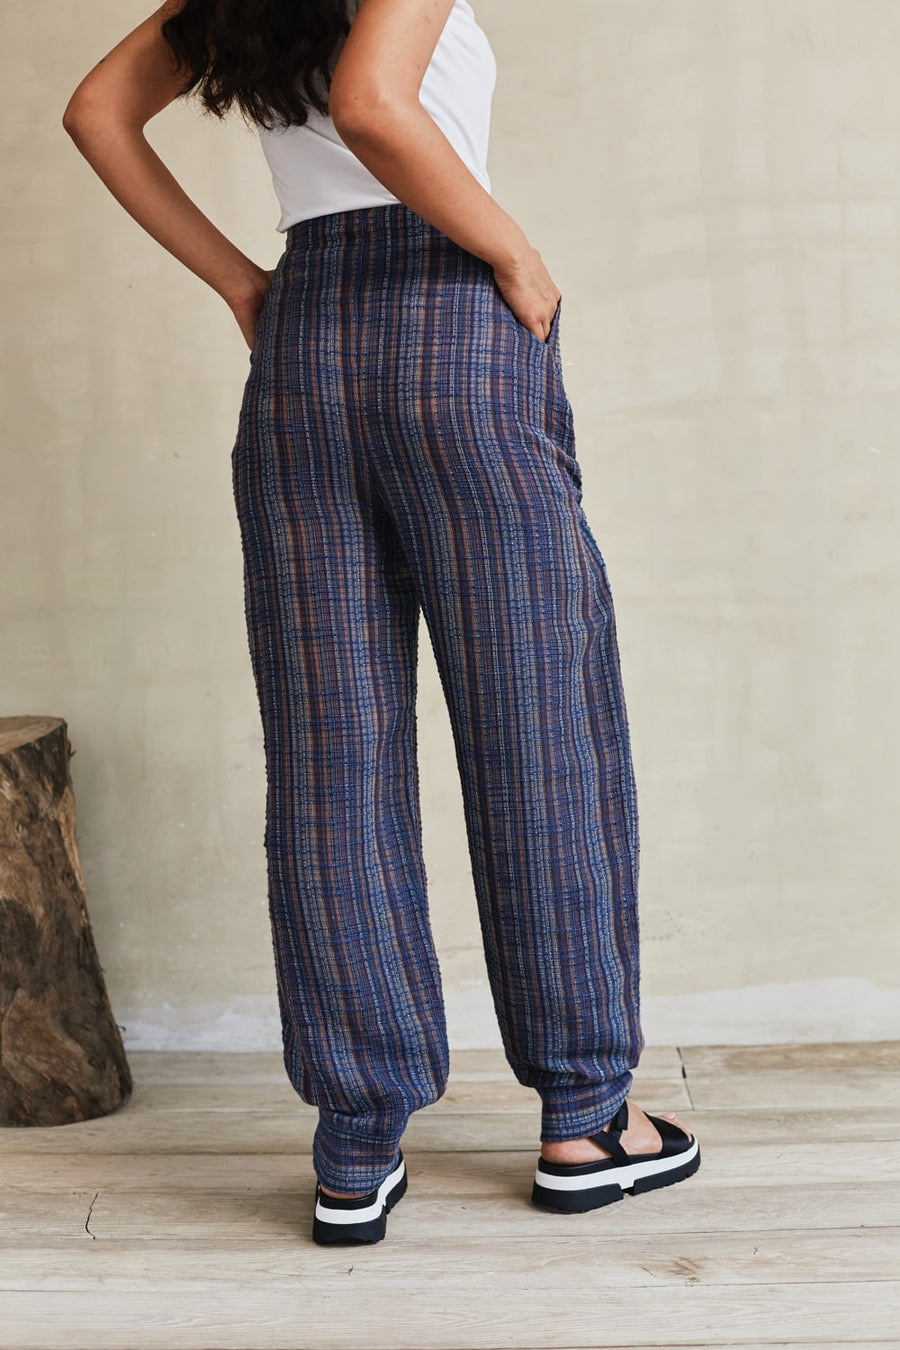 Walk The Talk Relaxed Pants - Ethical made fashion - onlyethikal